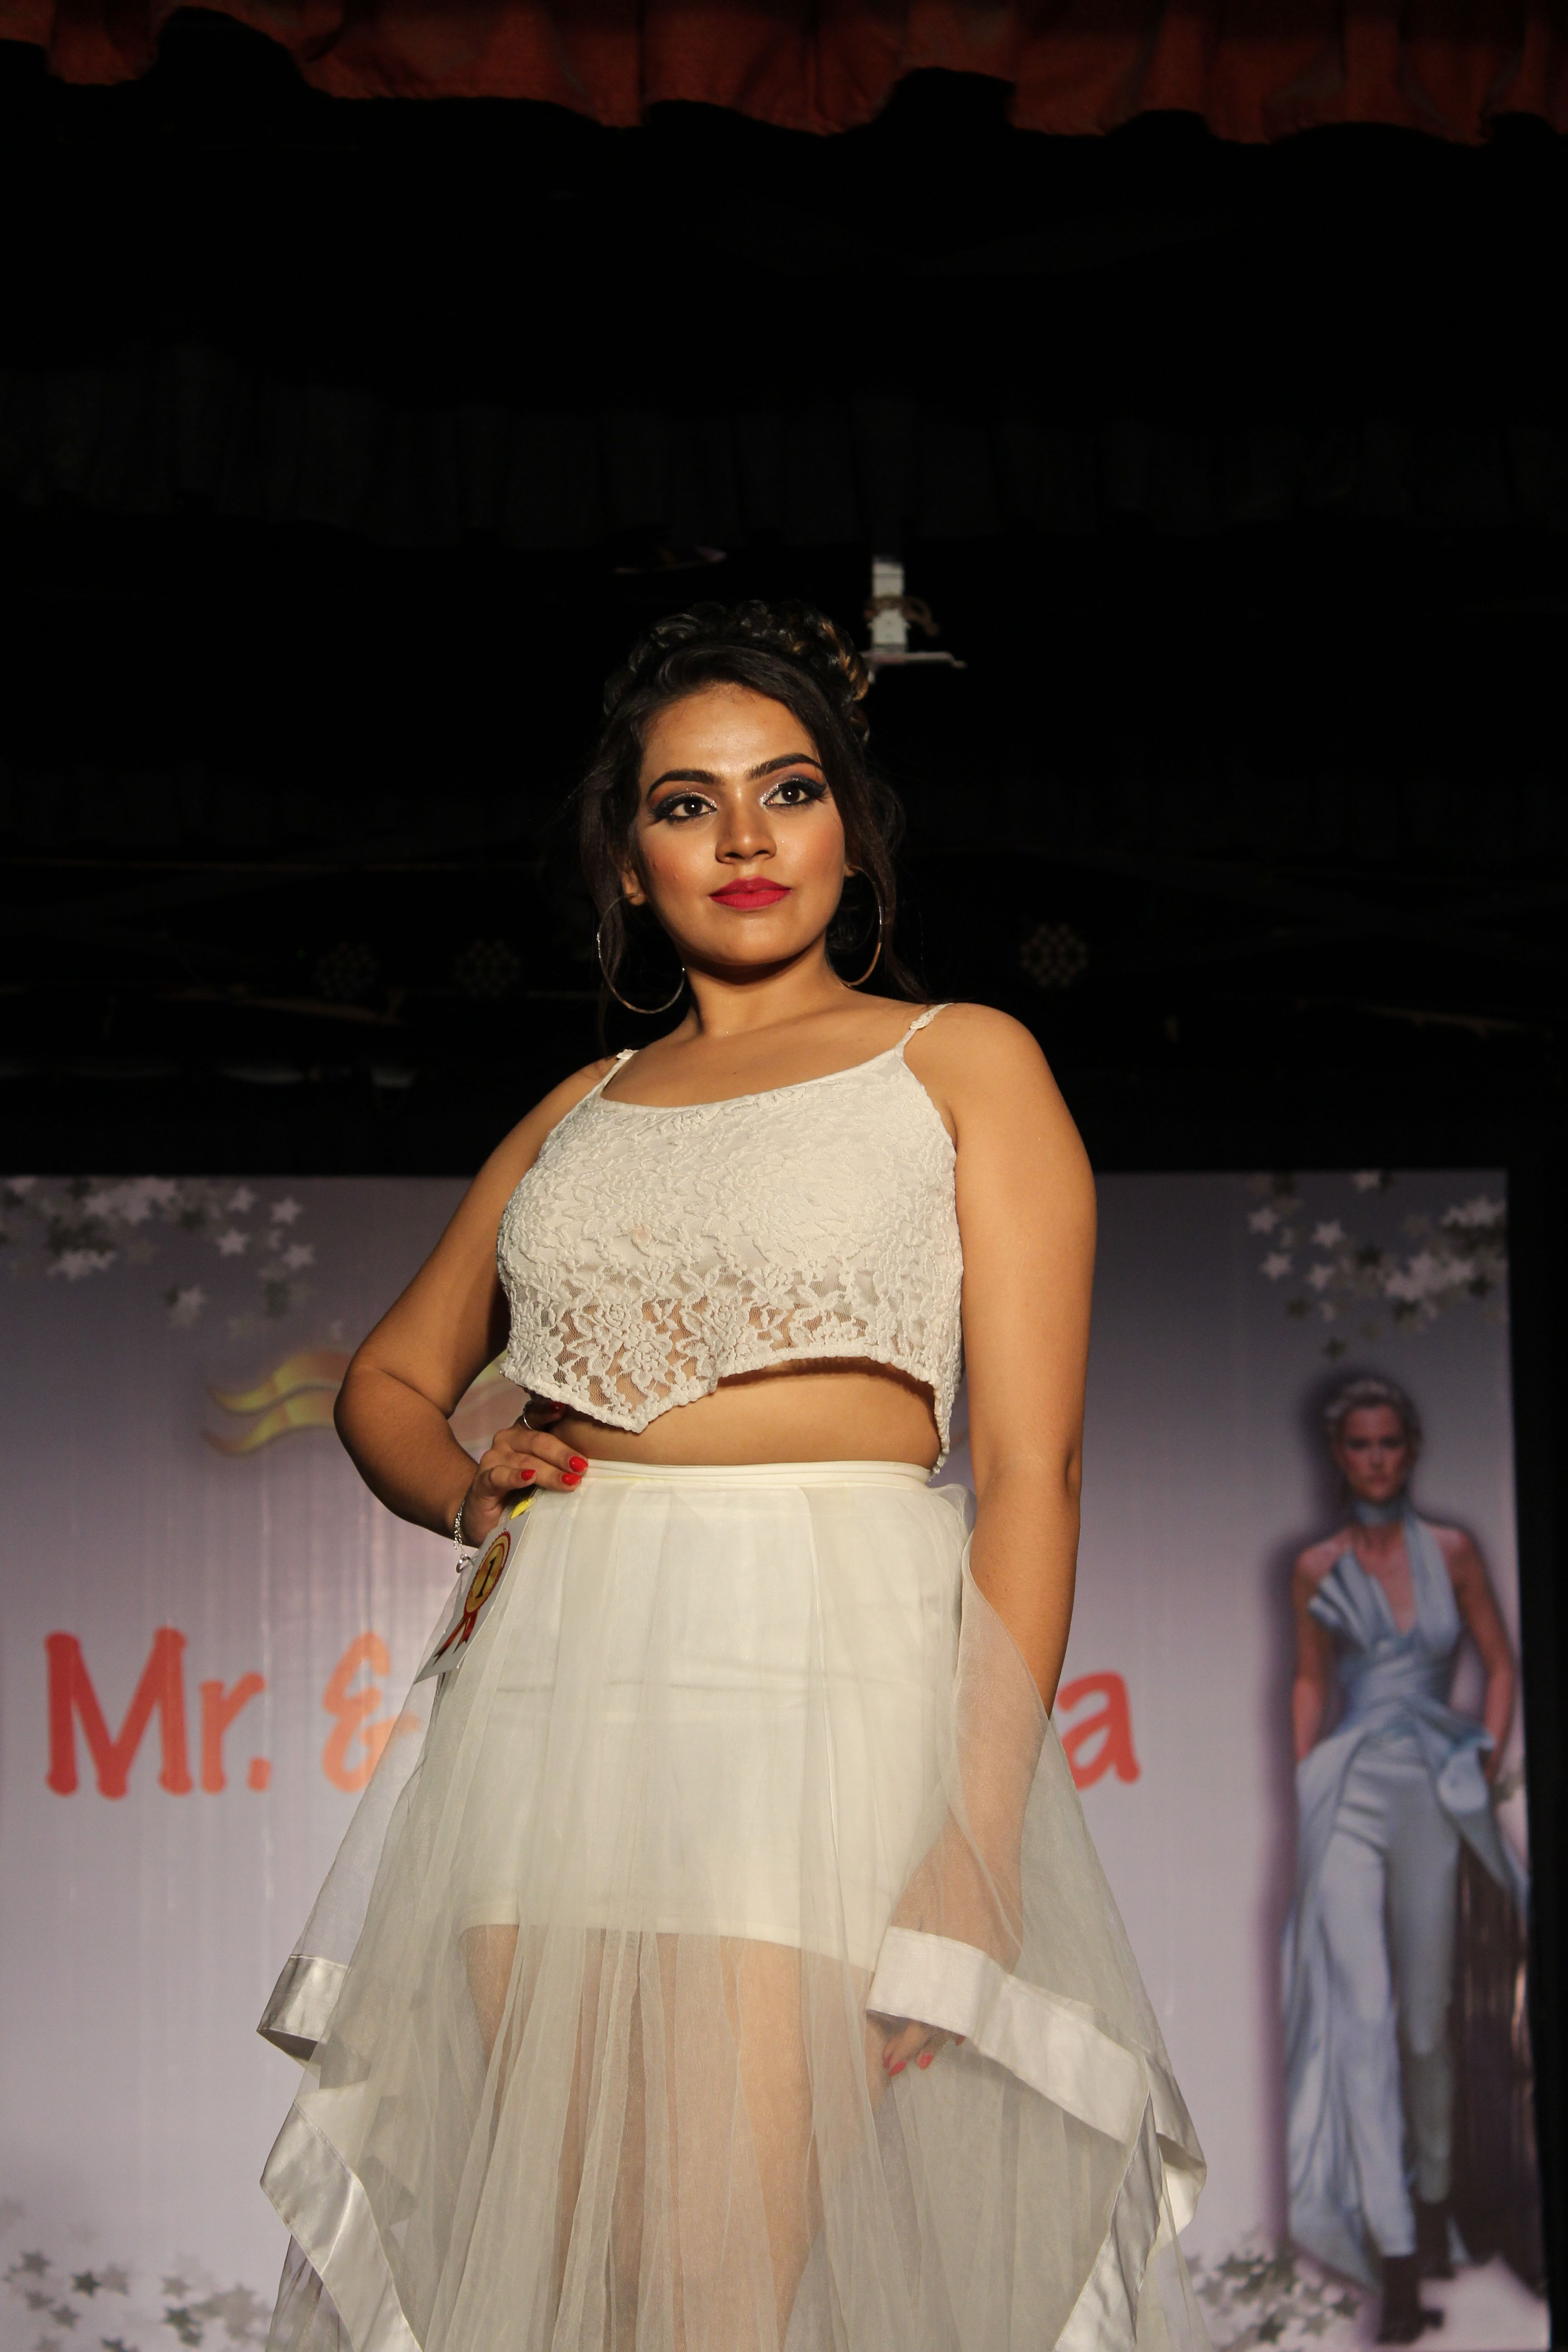 The Mr Miss India 2019 Competition Was Organized In Infant School Of Fashion Mediaconnect Mediaconnectevent Mediaconnectbengaluru Medi